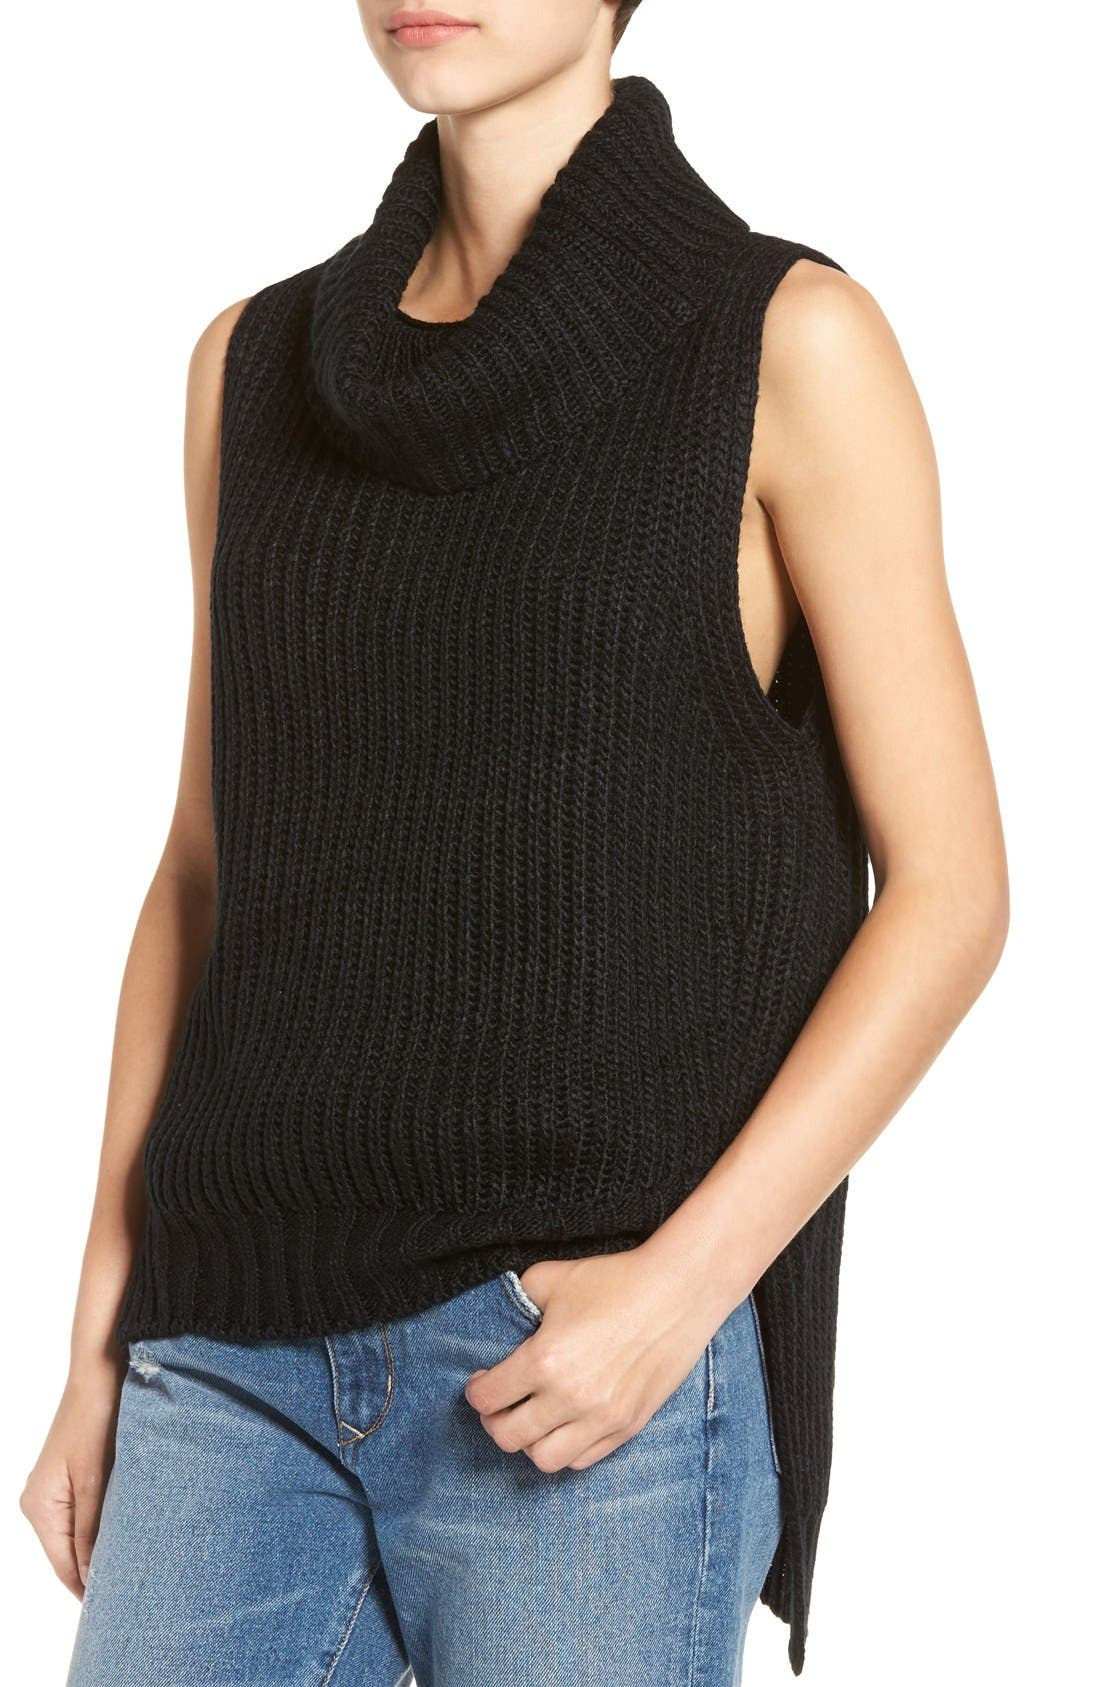 ASTR High/Low Turtleneck Sweater,                             Alternate thumbnail 6, color,                             001